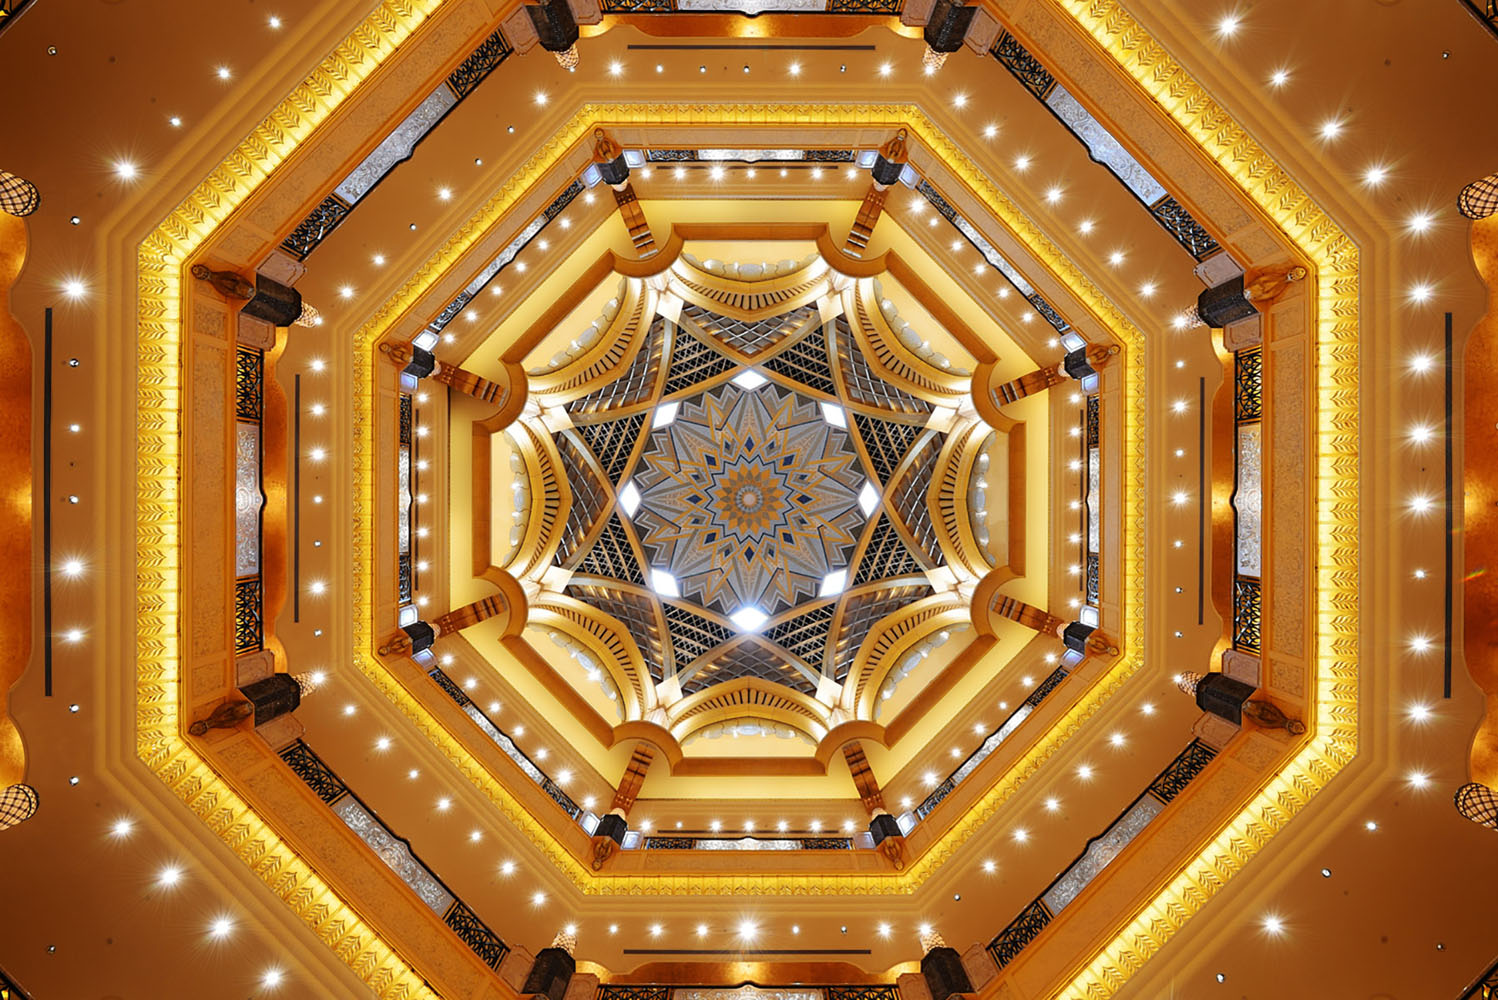 The colorful ceilings in The Emirates Palace